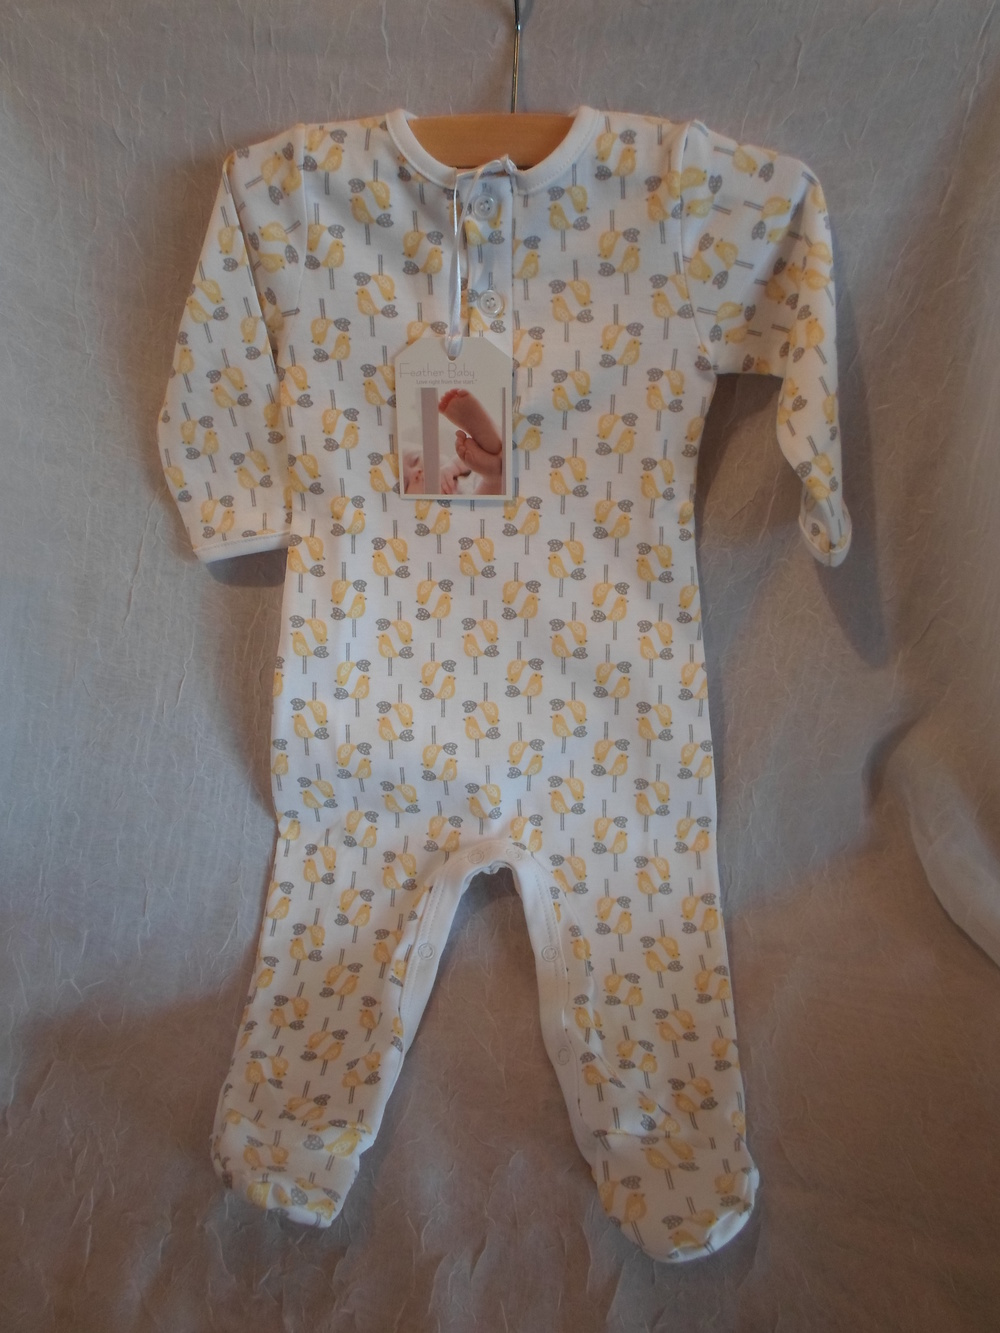 Feather Baby Pima Cotton Footed Romper Yellow Birds in size 6-9m $36.00 Wants 1